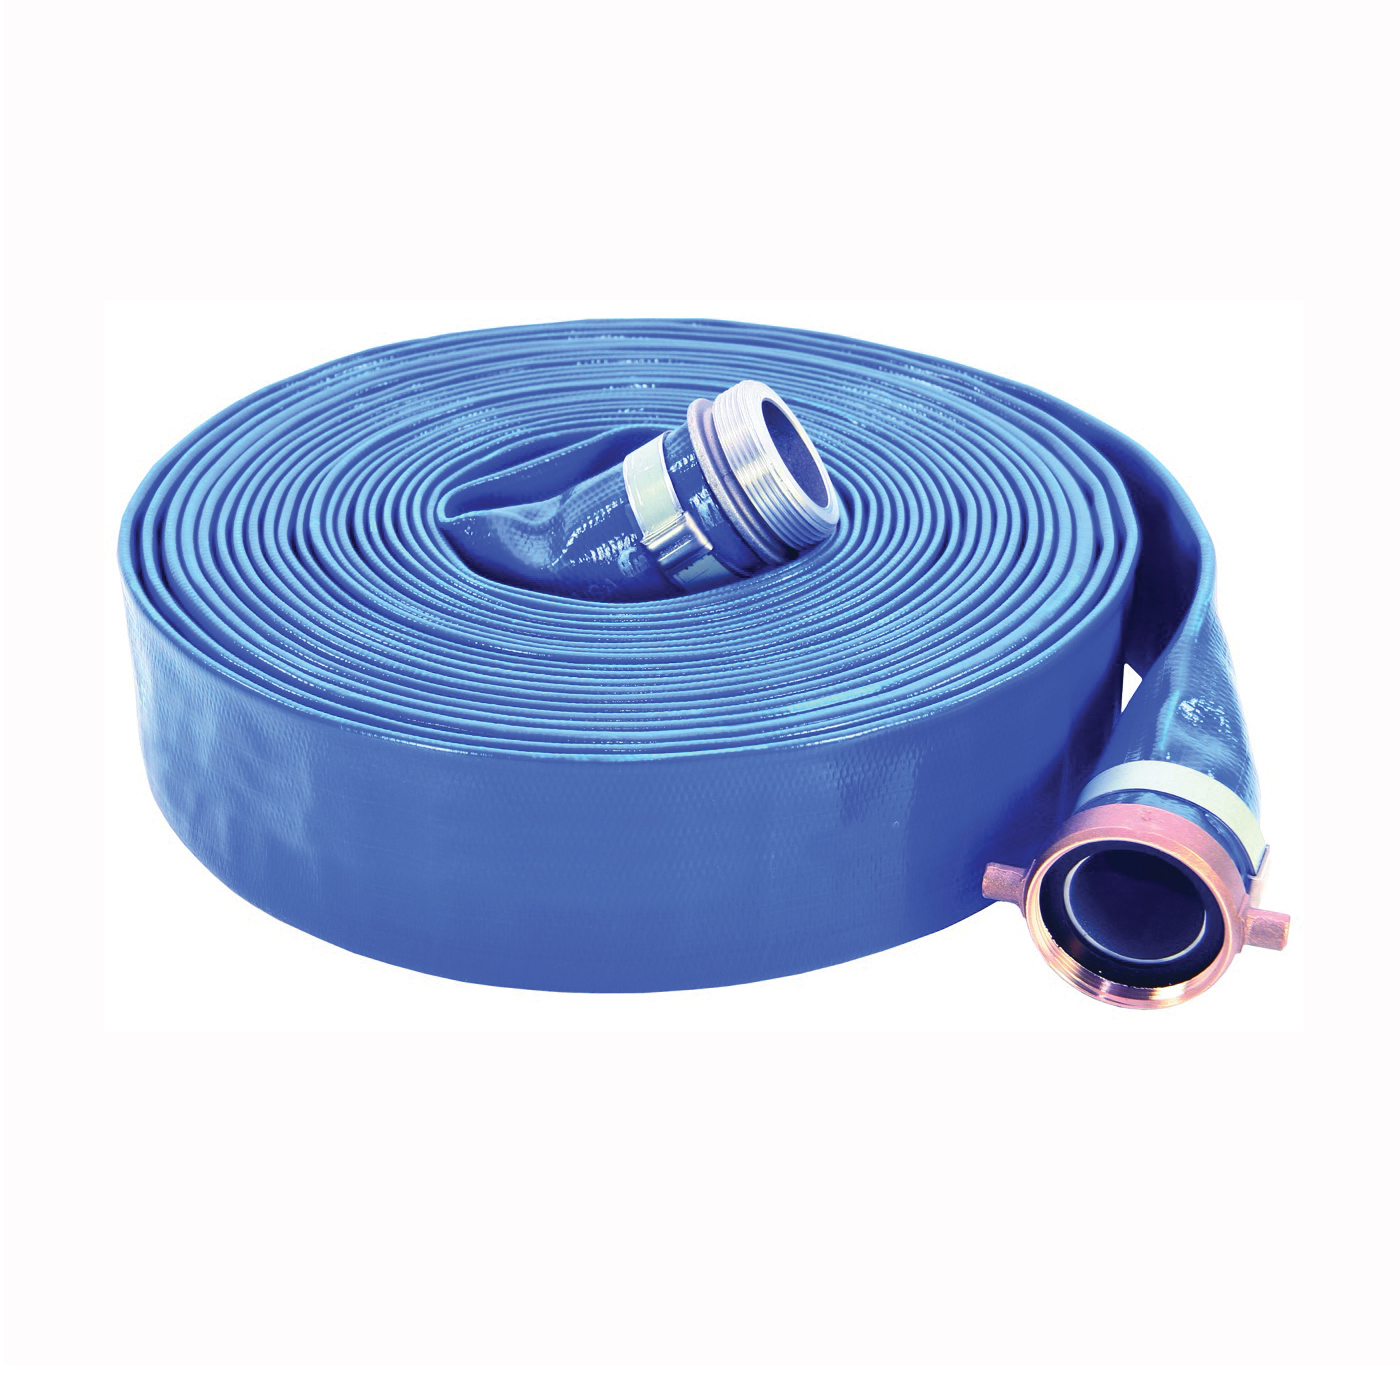 Picture of ABBOTT RUBBER 1147-3000-50-CE Pump Discharge Hose Assembly, 3 in ID, 50 ft L, Male x Female Coupling, PVC, Blue